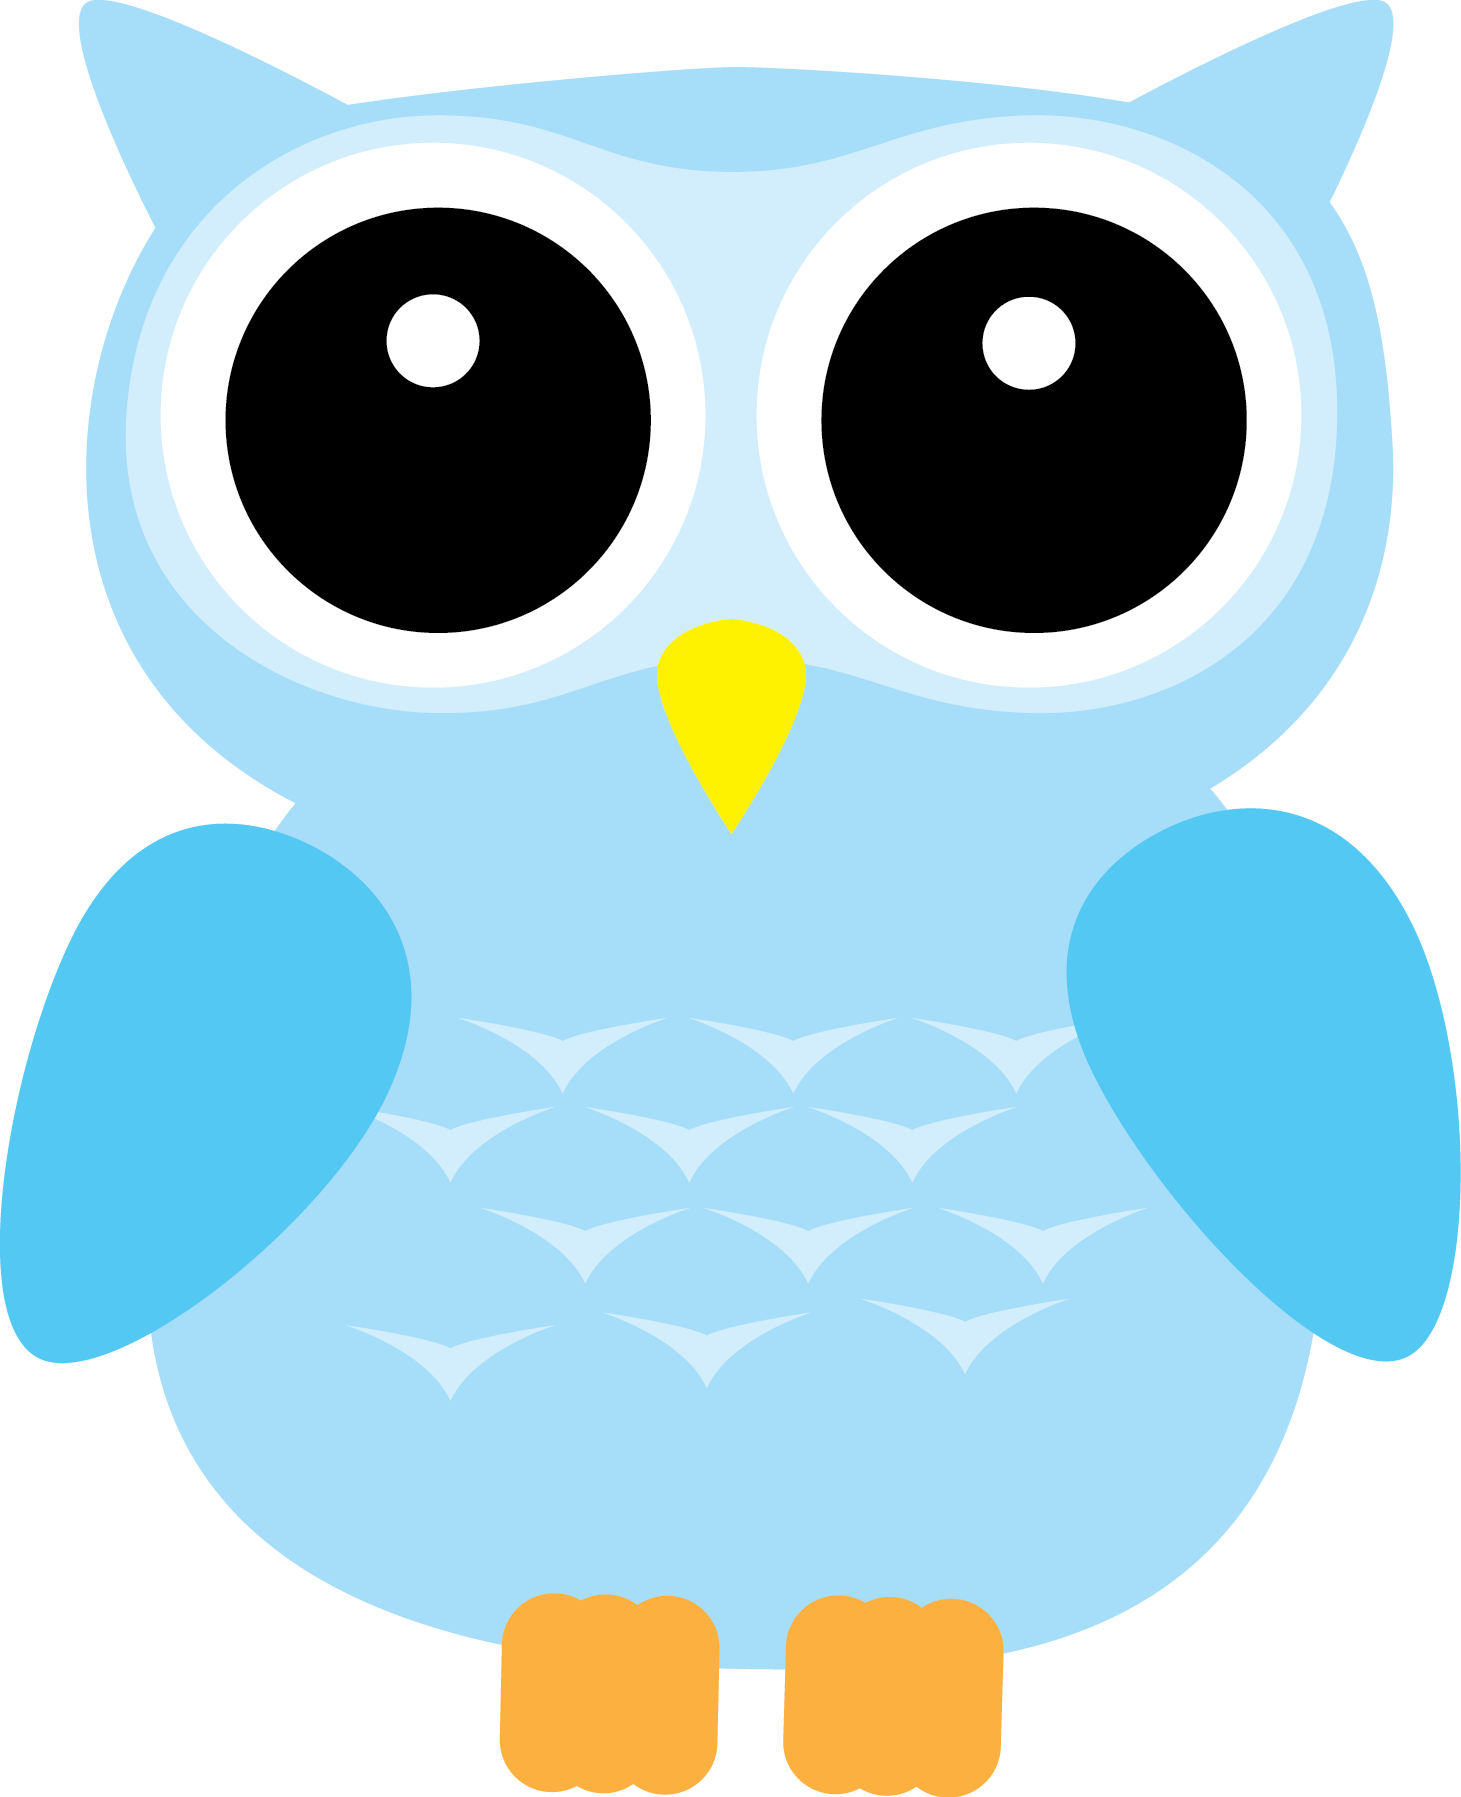 Snowflake owl clipart png free download Blue Owl Clipart & Blue Owl Clip Art Images #1434 - OnClipart png free download